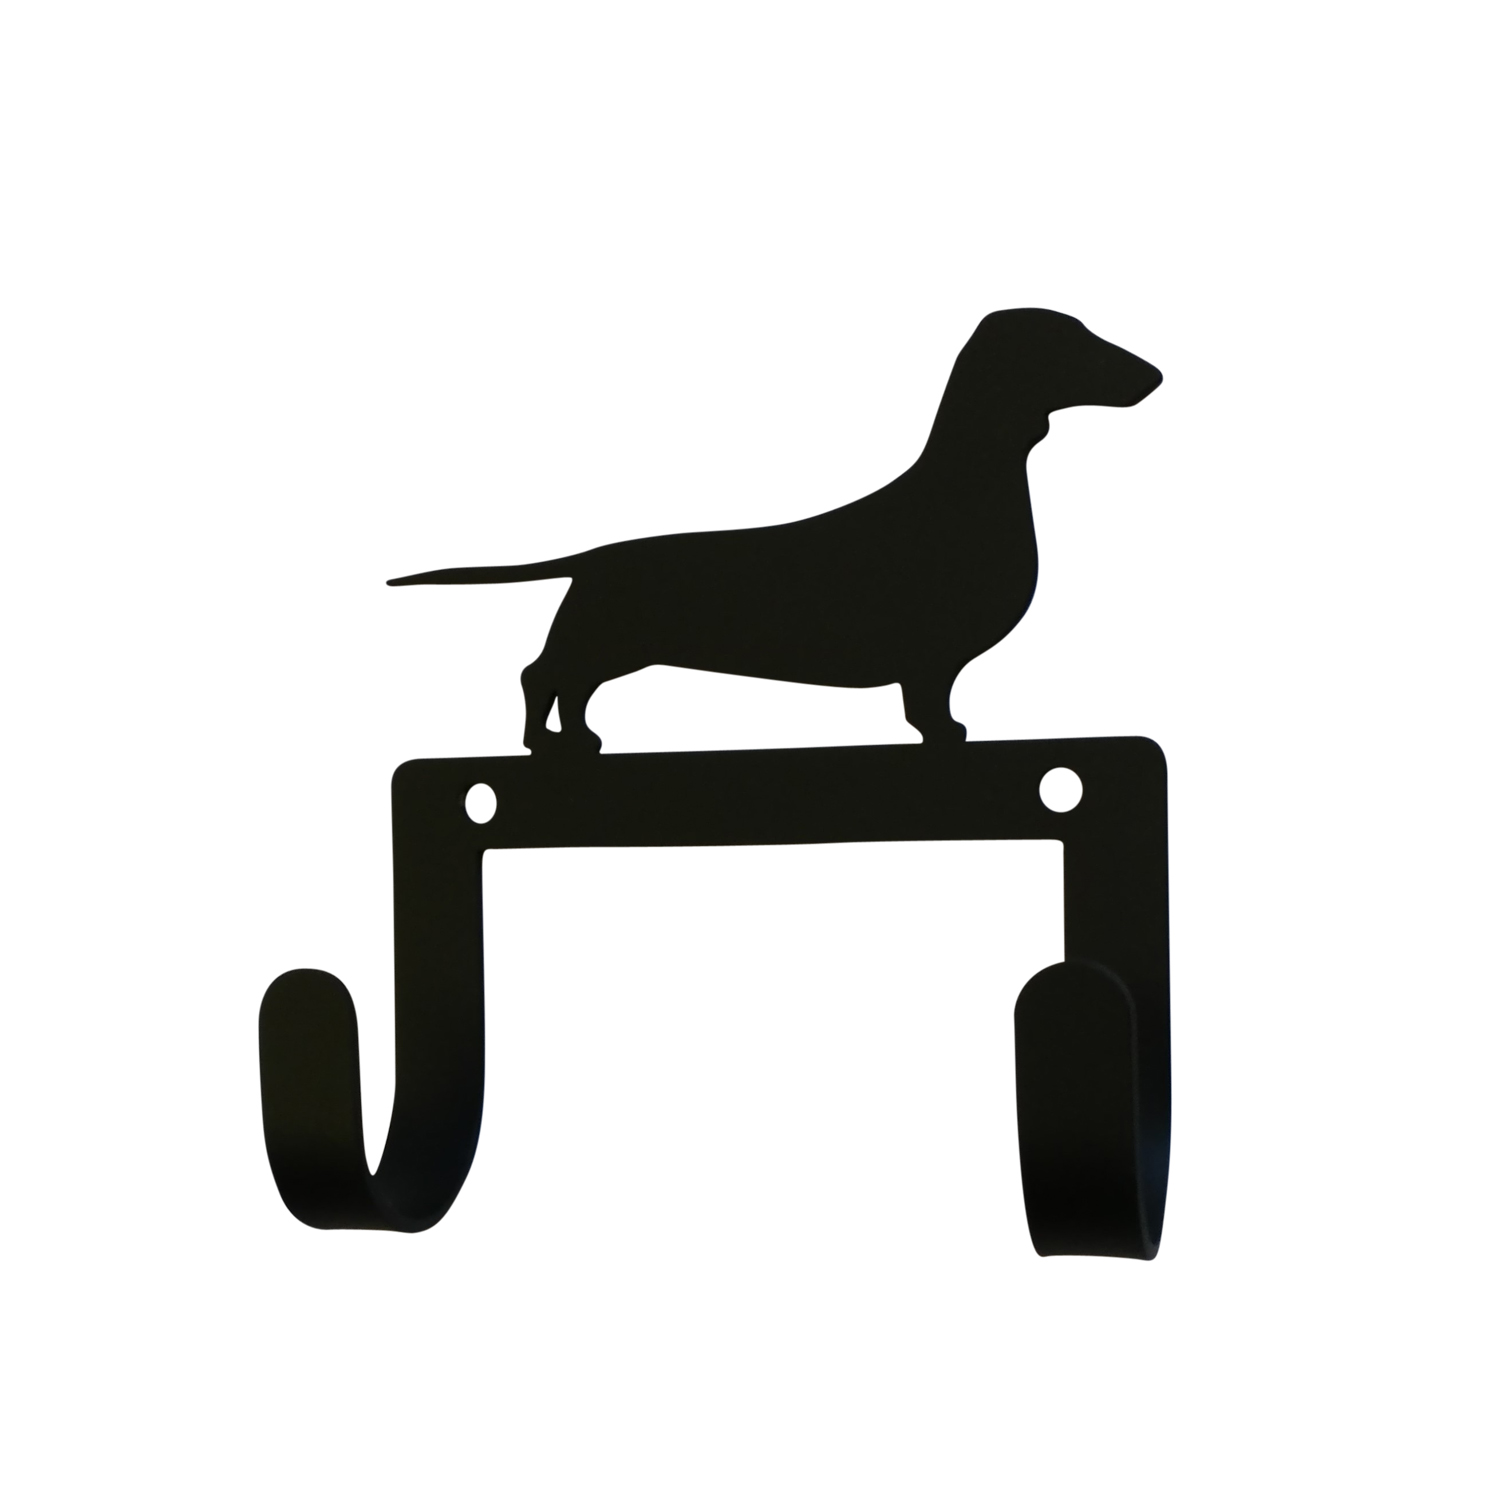 NEW - Dachshund - Leash and Collar Wall Hook